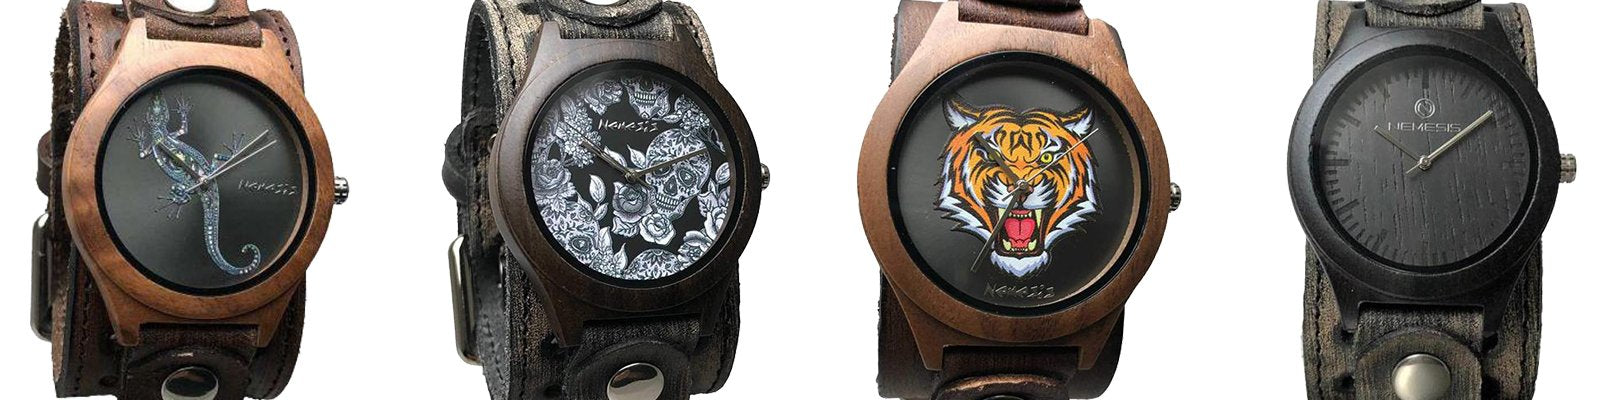 Wood Case Watch